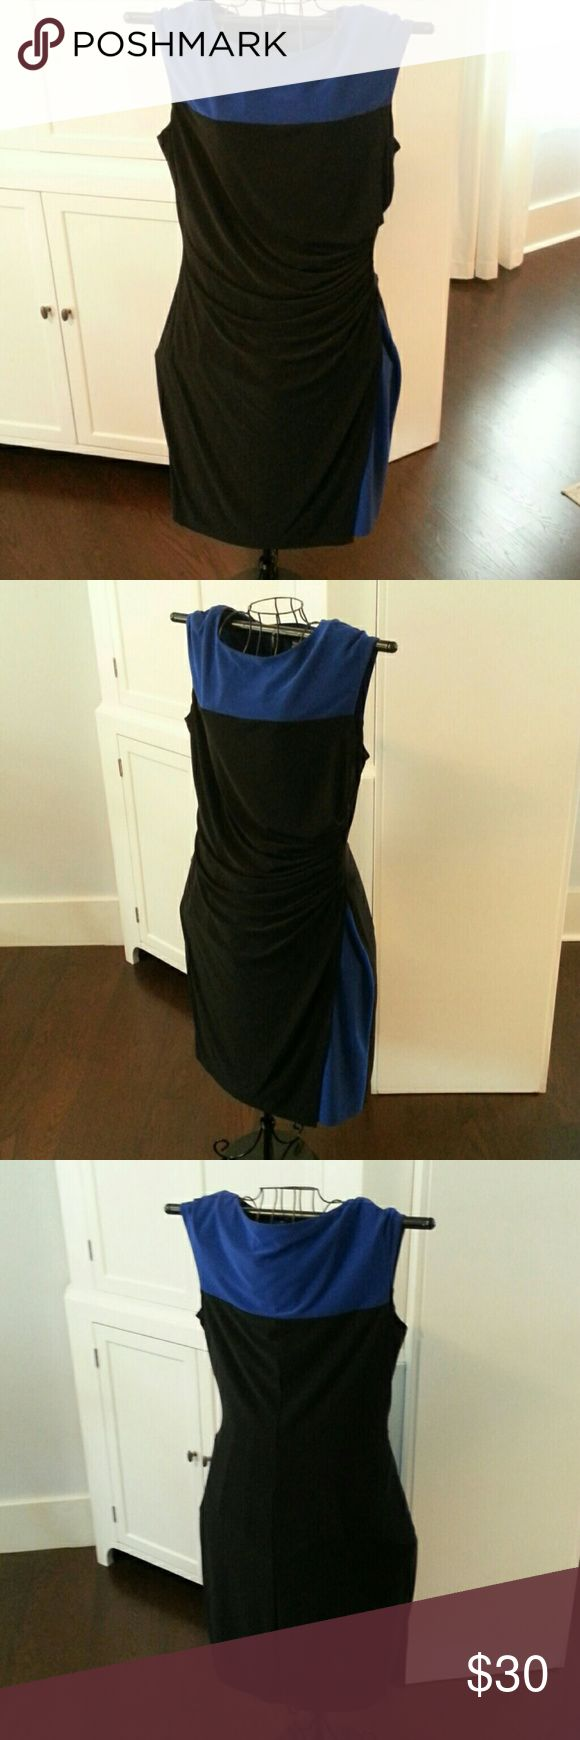 "CHAPS figure flattering DRESS Royal blue & Black. Rouching on waist side for a figure flattering look. Peek-a-boo Blue burst of color down side. Fully lined, weighted fabric ( the Chaps way) is perfect for a pulled together great look. Pit to pit 20.5"" Shoulder to hem 40.5"" GREAT CONDITION! Chaps Dresses"